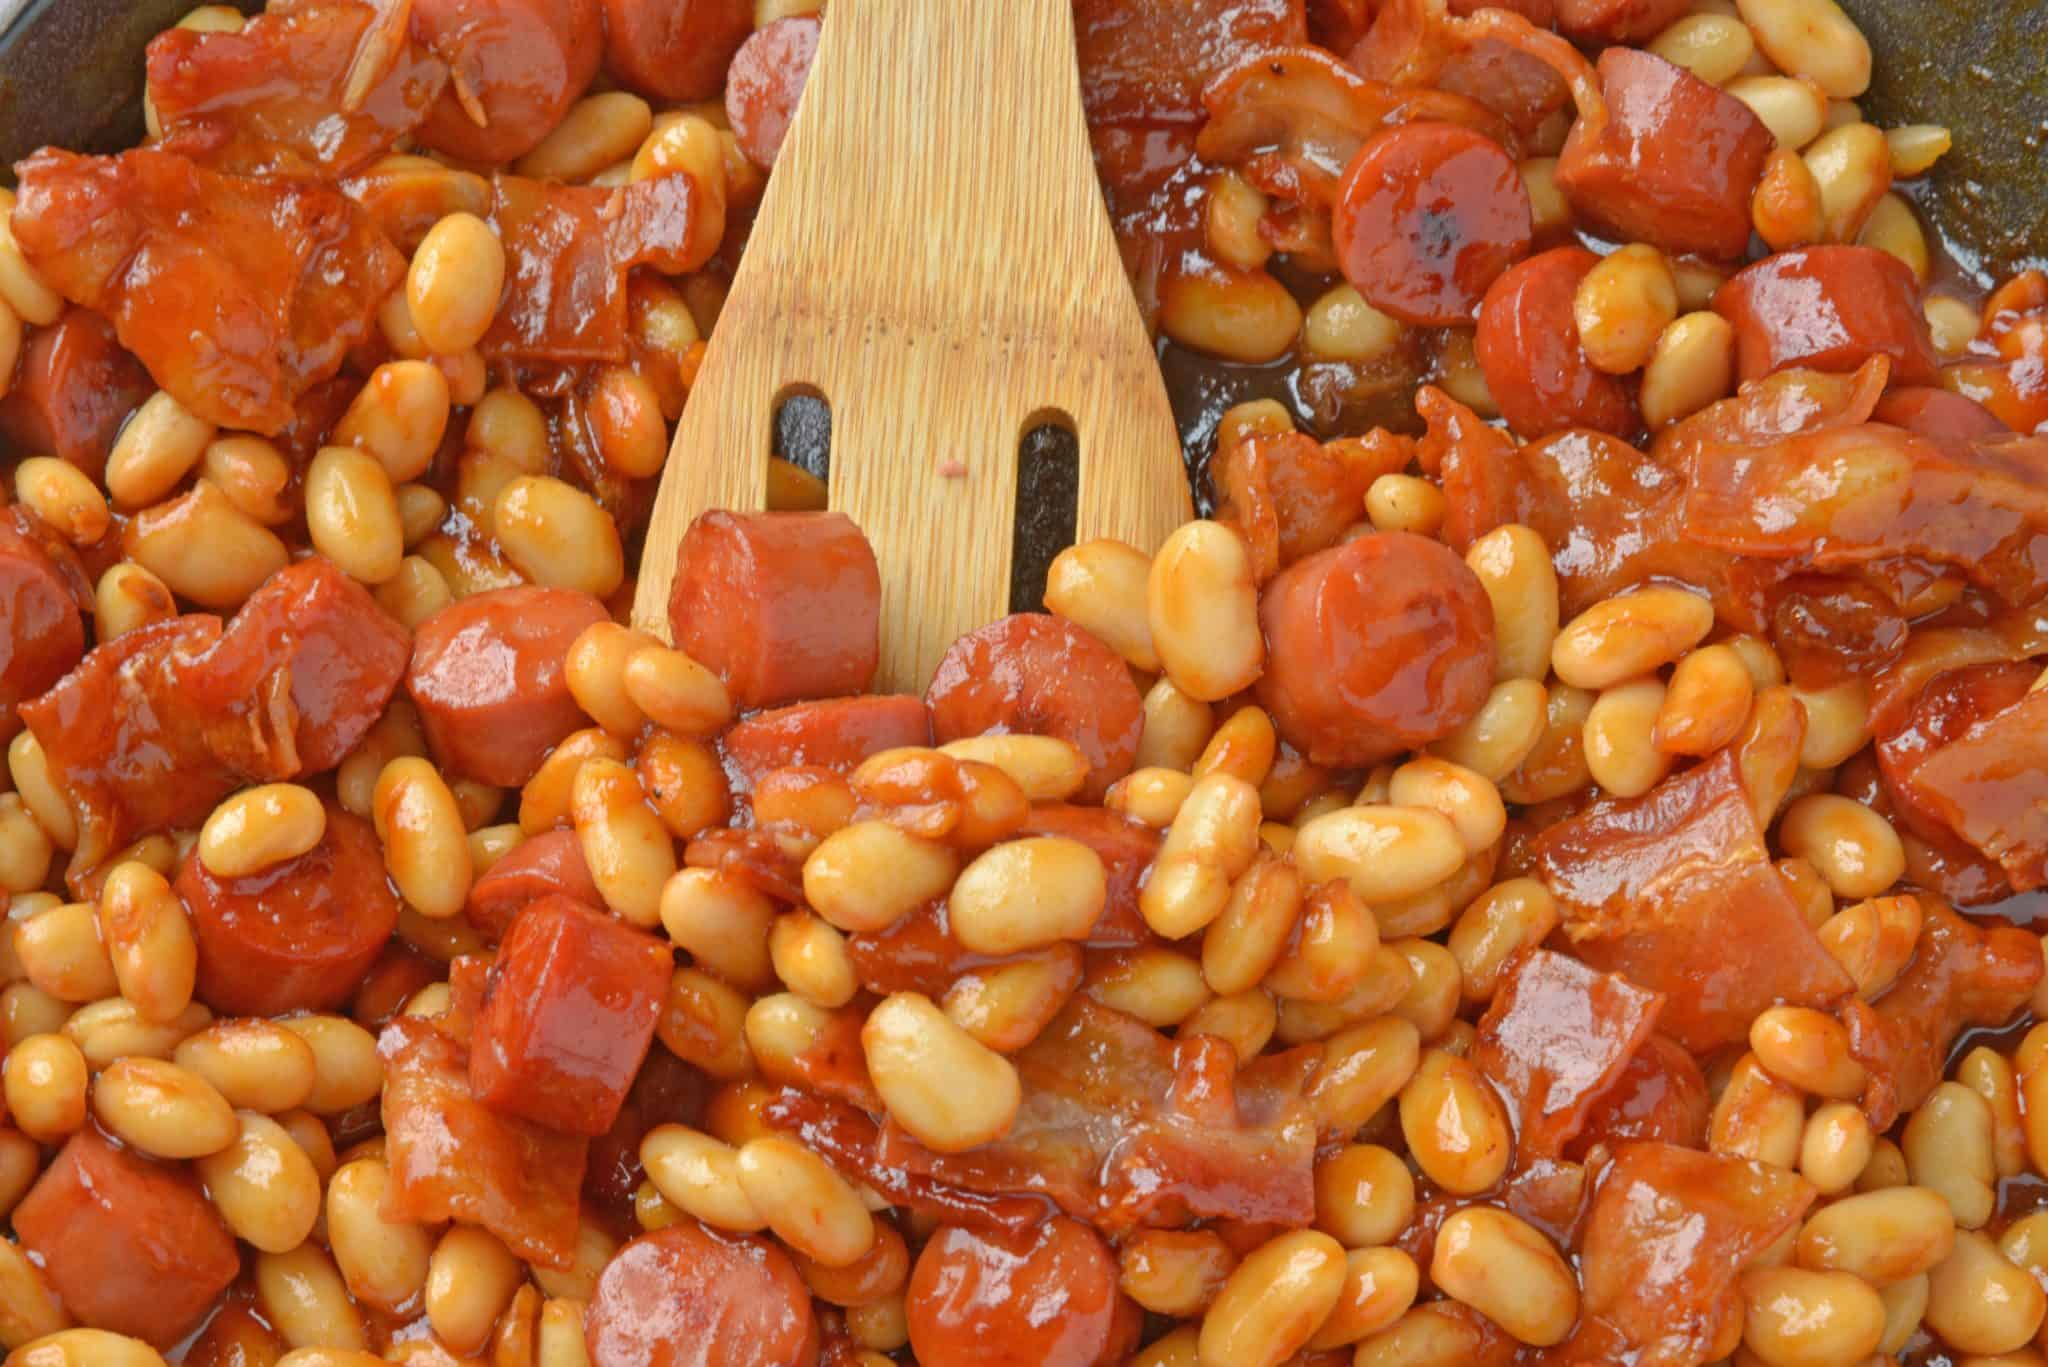 This Franks and Beans recipe is made with real beef hot dogs and less sugar than the canned version. Perfect as a quick and easy lunch or a classic camping food! #franksandbeans #homemadebeanieweenies www.savoryexperiments.com